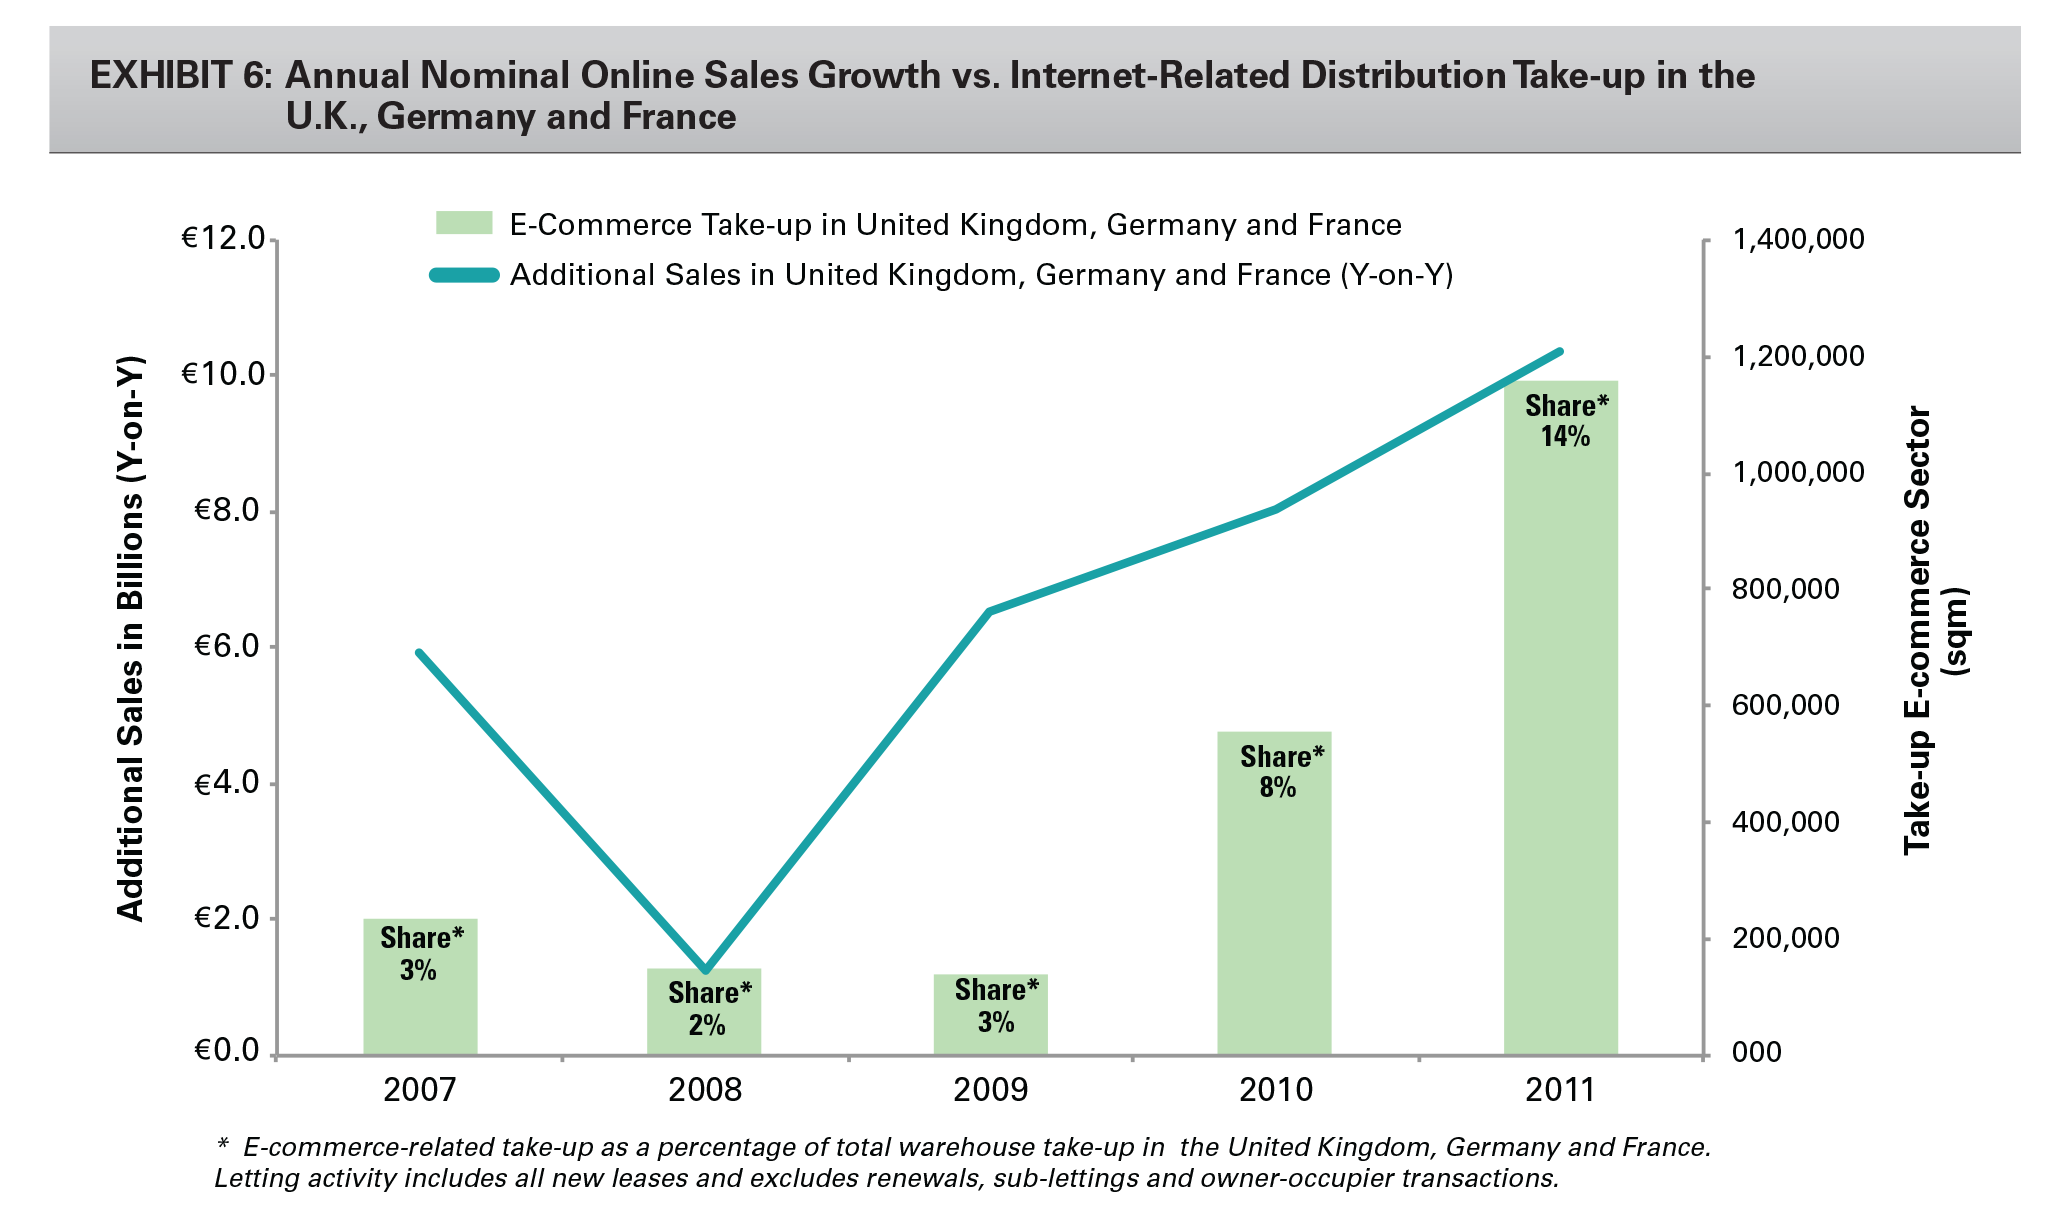 Exhibit 6: Annual Nominal Online Sales Growth vs. Internet-Related Distribution Take-up in the U.K., Germany and France